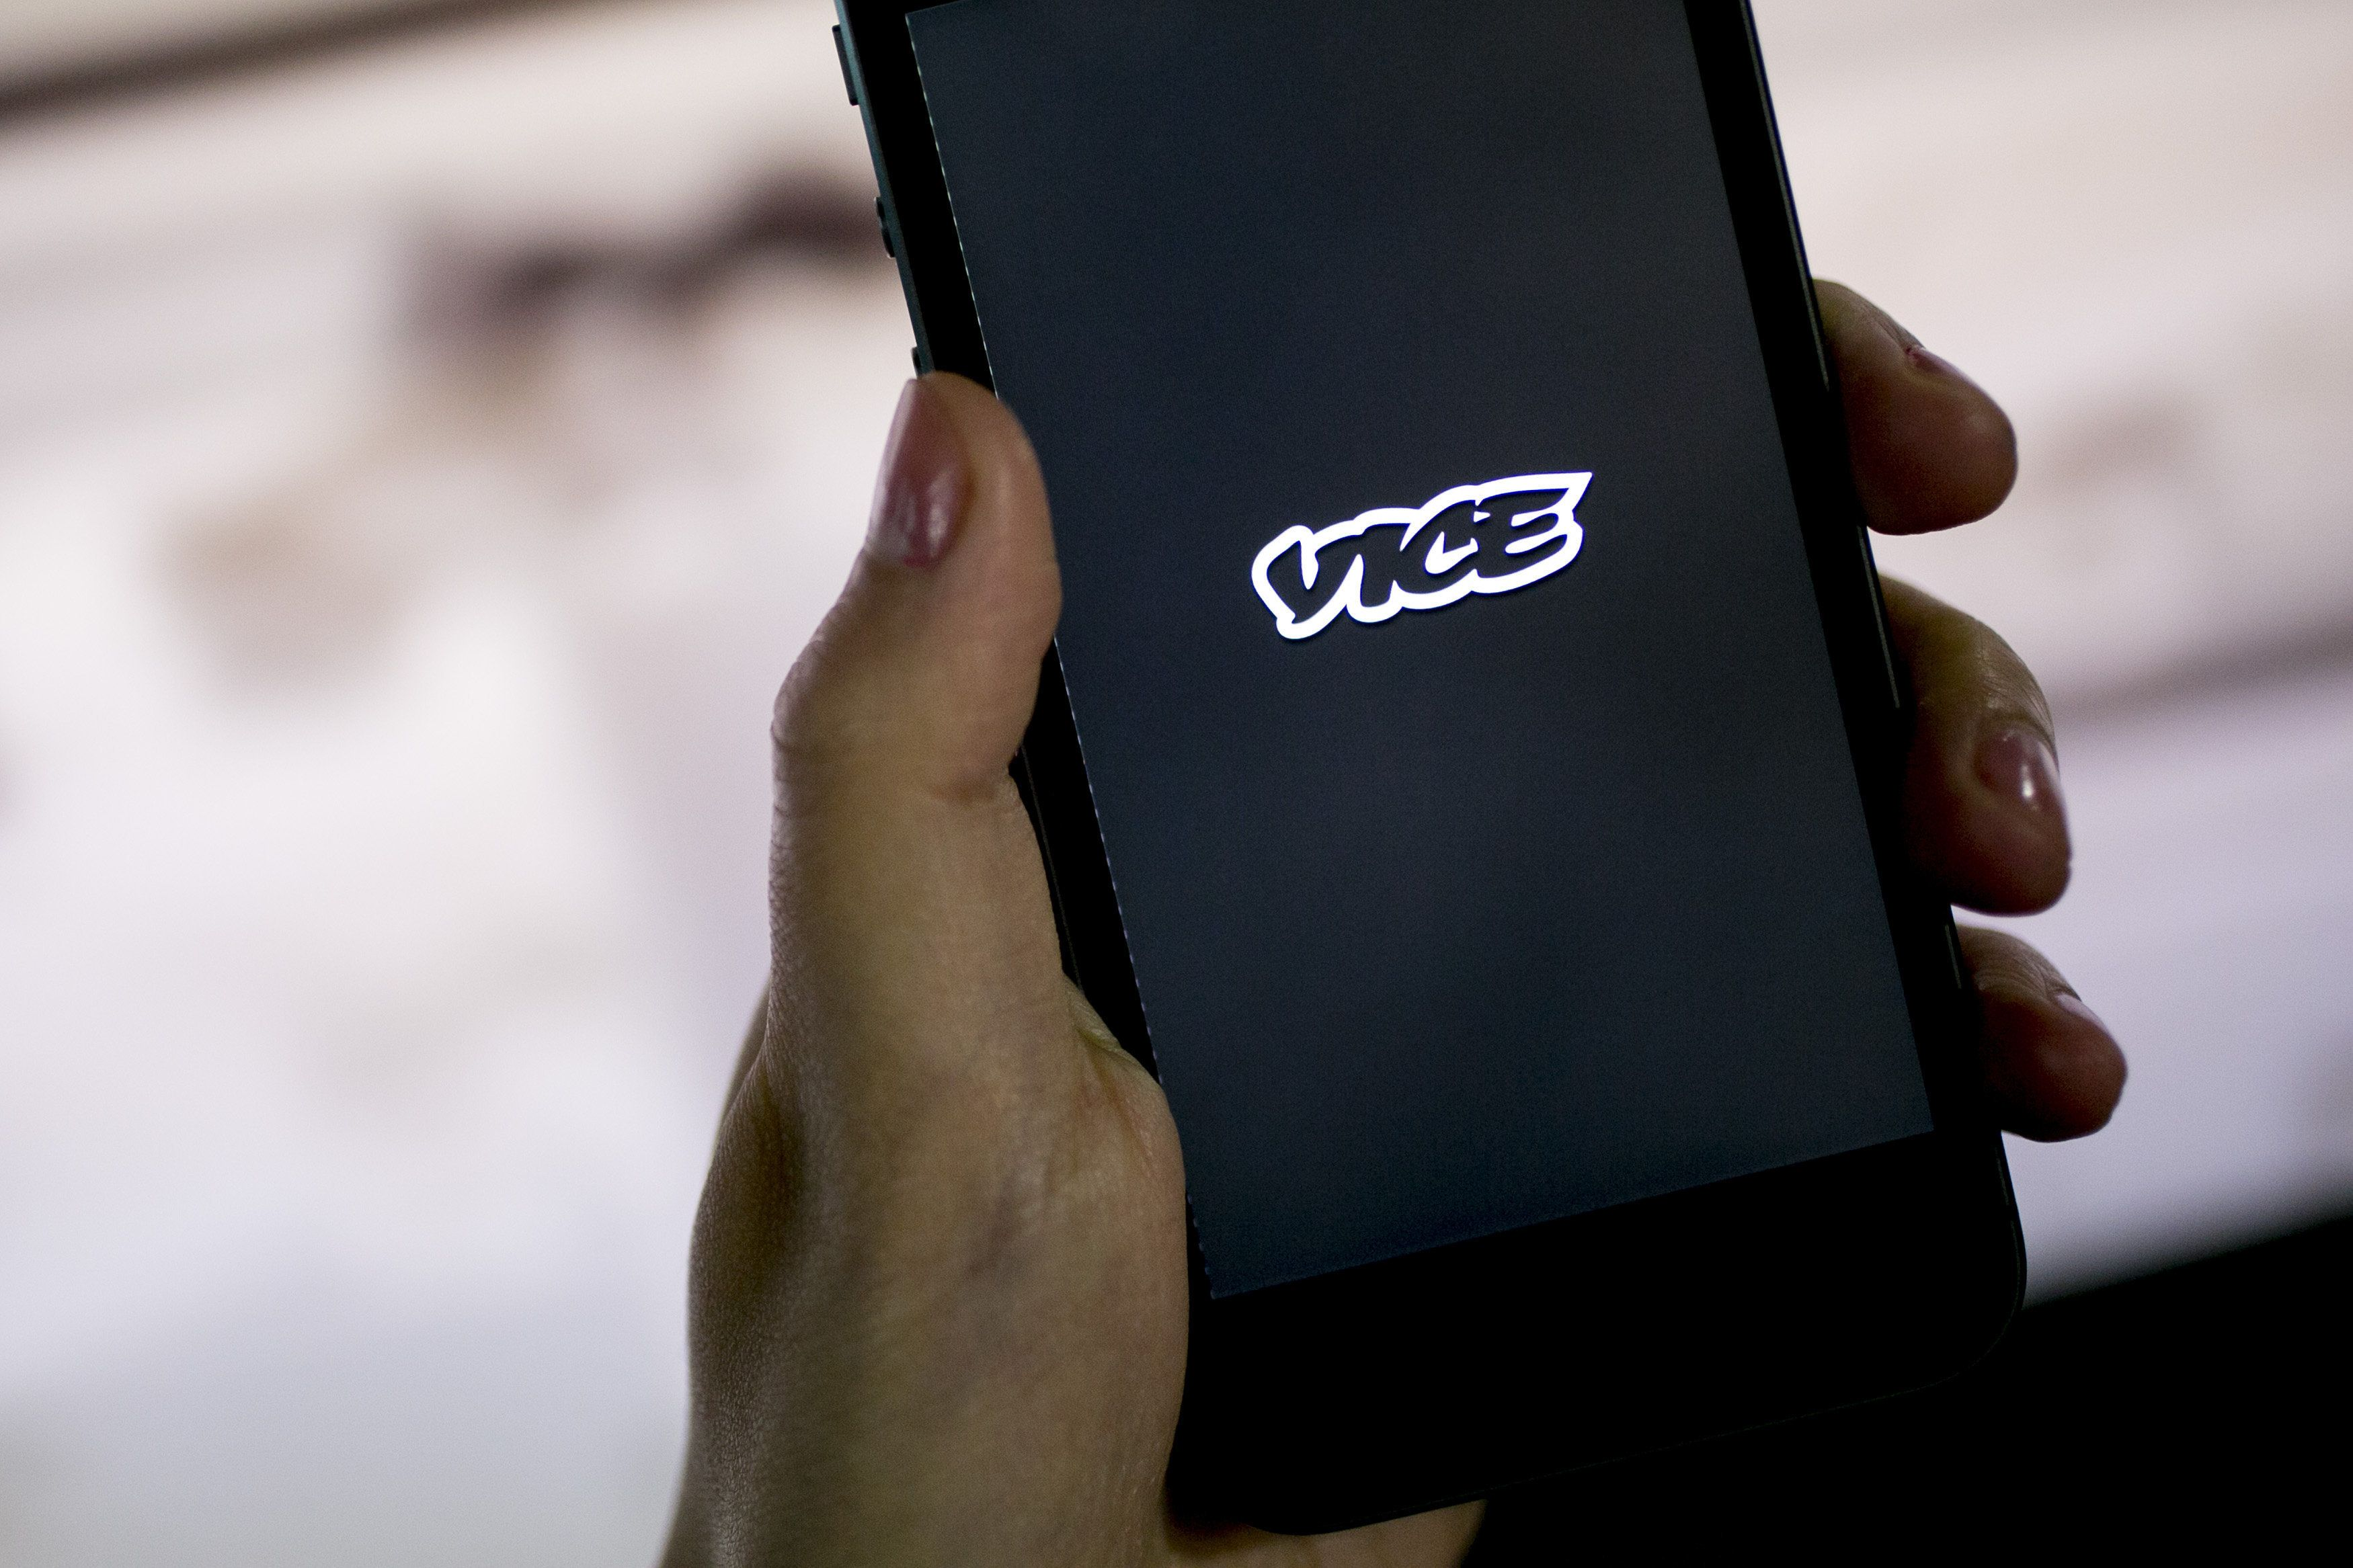 The Vice Media Inc. application (app) is displayed on an Apple Inc. iPhone 5s for an arranged photograph in Washington, D.C., U.S., on Monday, Aug. 11, 2014. Vice Media, backed by billionaire Rupert Murdoch, has said that it's poised to double revenue to $1 billion by 2016. Co-founder Shane Smith had said a March interview with Bloomberg Television that Vice Media may pursue an initial public offering. Photographer: Andrew Harrer/Bloomberg via Getty Images